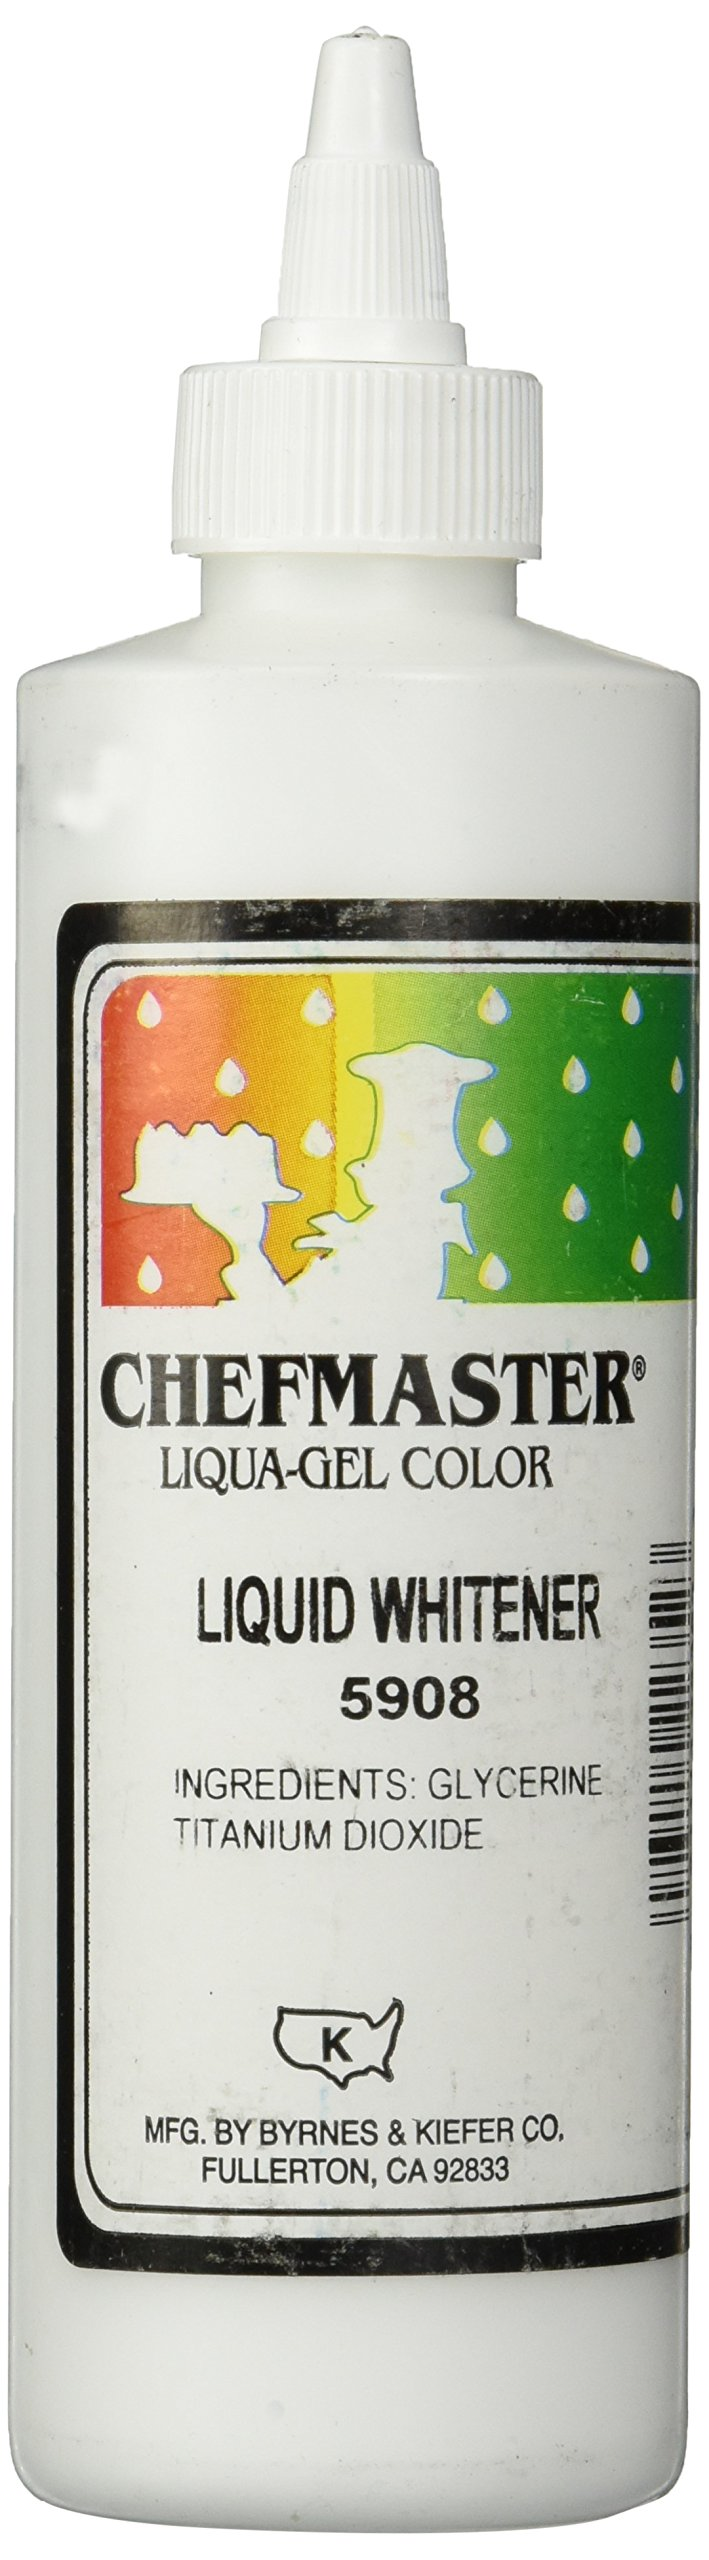 Chefmaster Liquid Whitener Food Color, 16-Ounce, White by Chefmaster